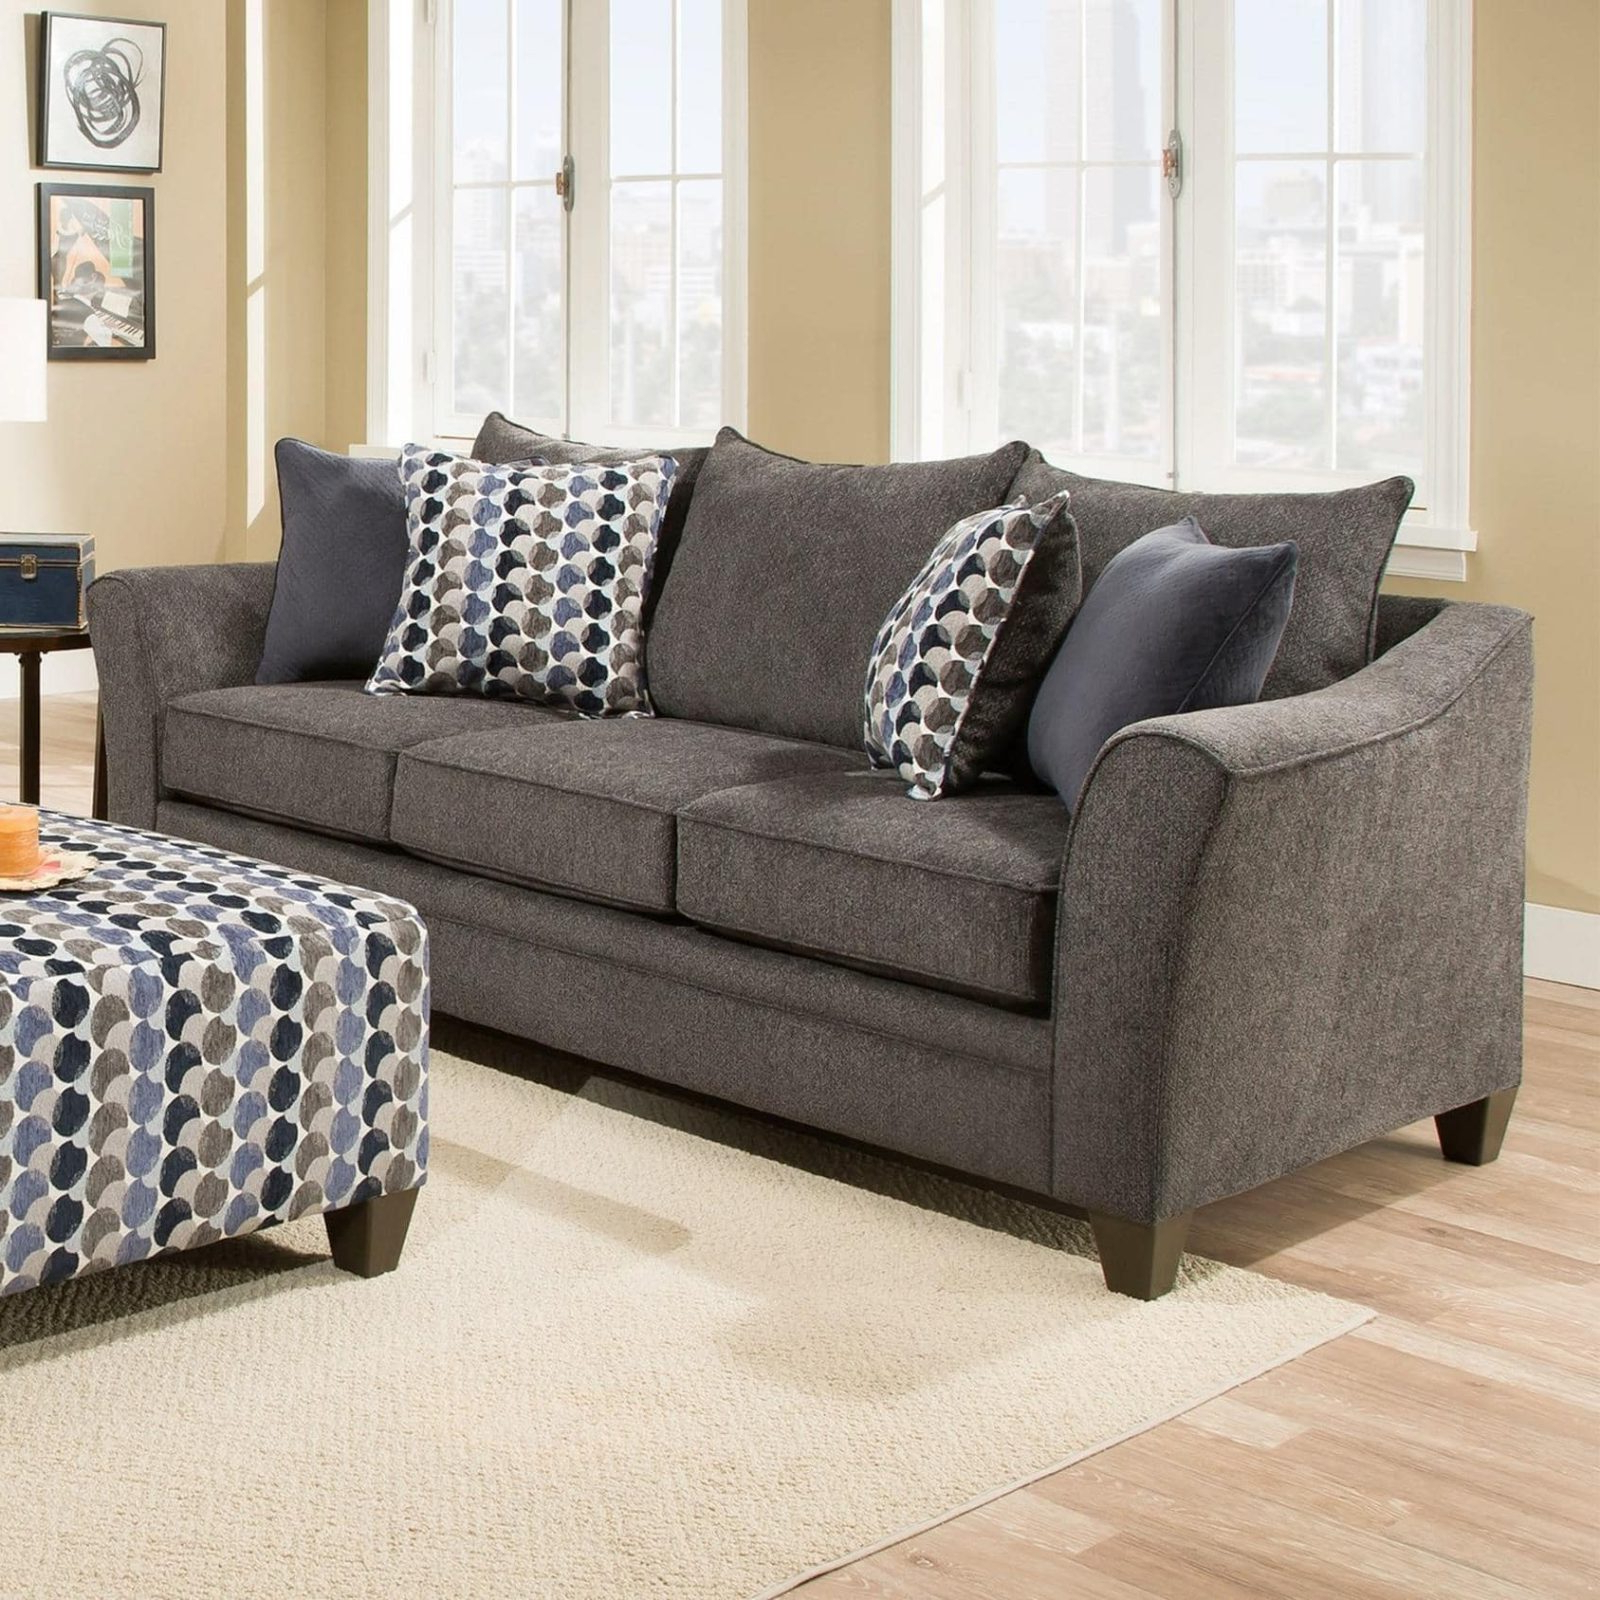 Aidan Sofa – Furniture & More With Regard To Most Up To Date Aidan Ii Sofa Chairs (Gallery 5 of 20)